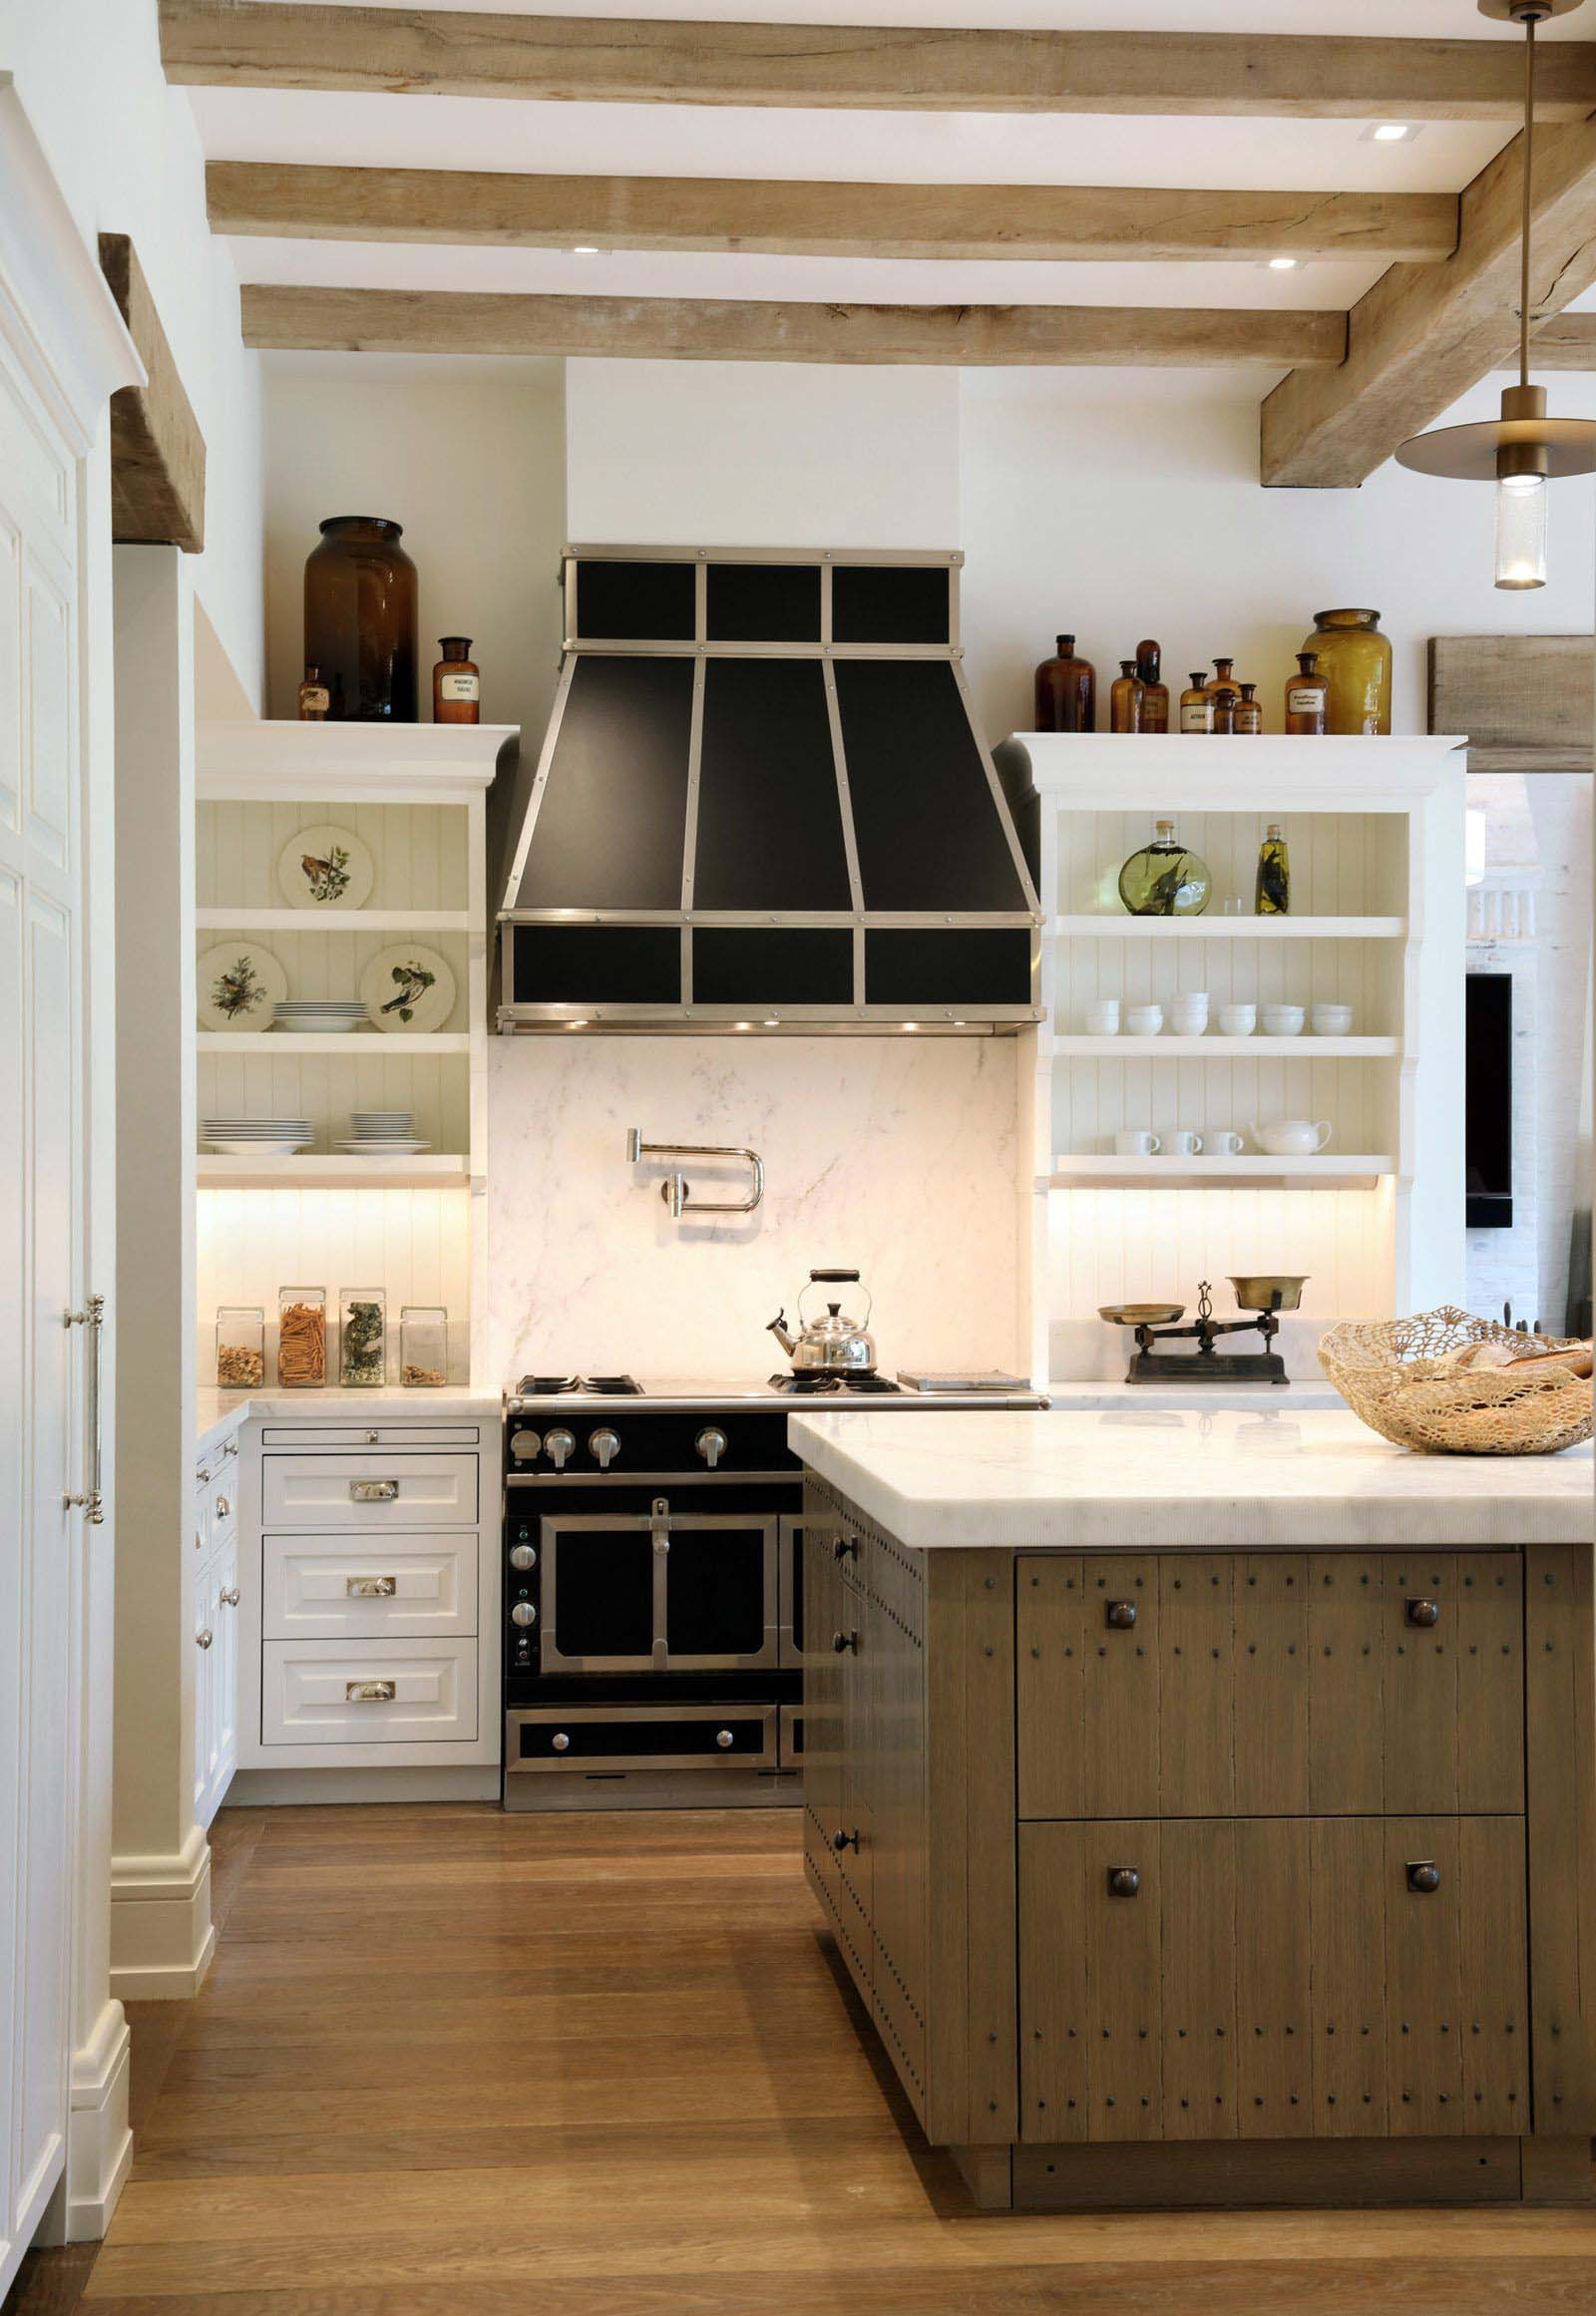 exposed real wood ceiling beams with black stove and range hood